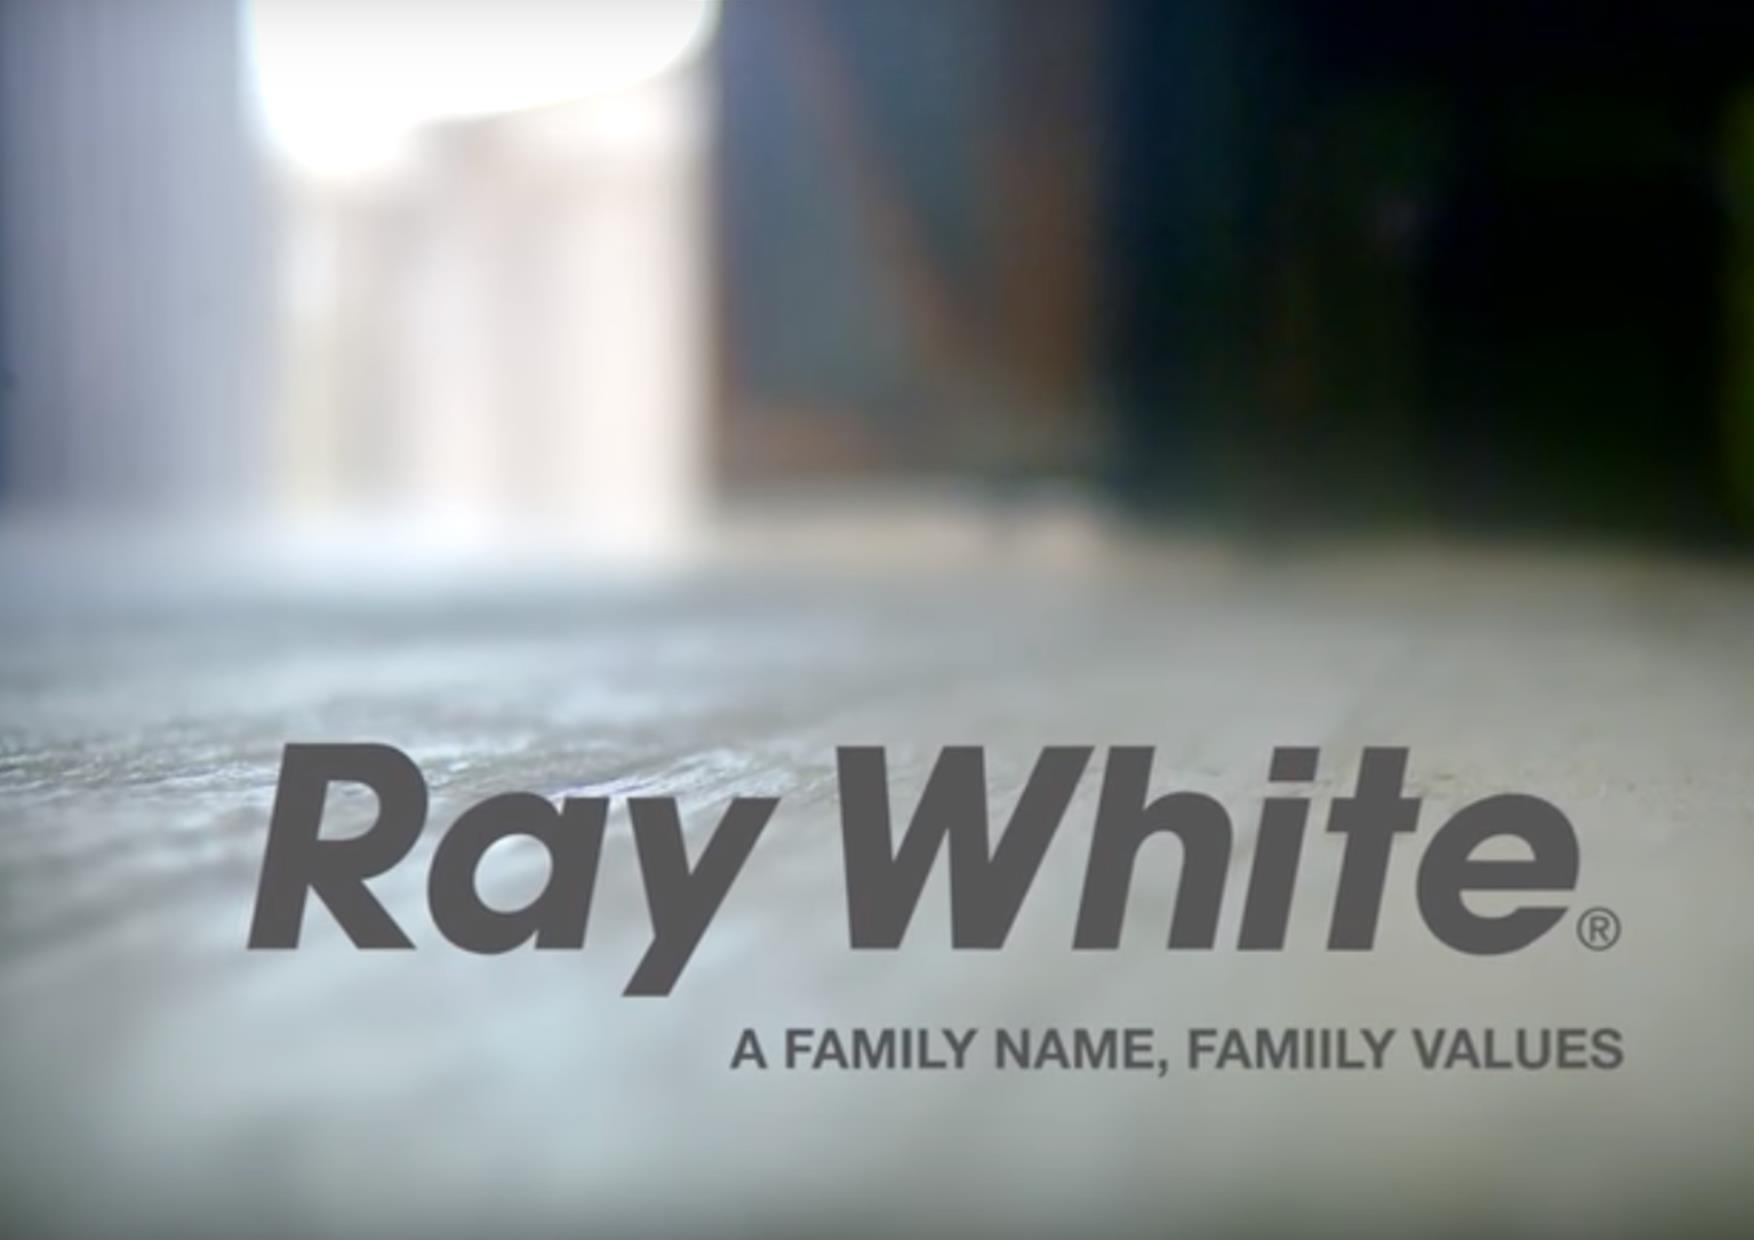 Ray White - Insight - Who Are We